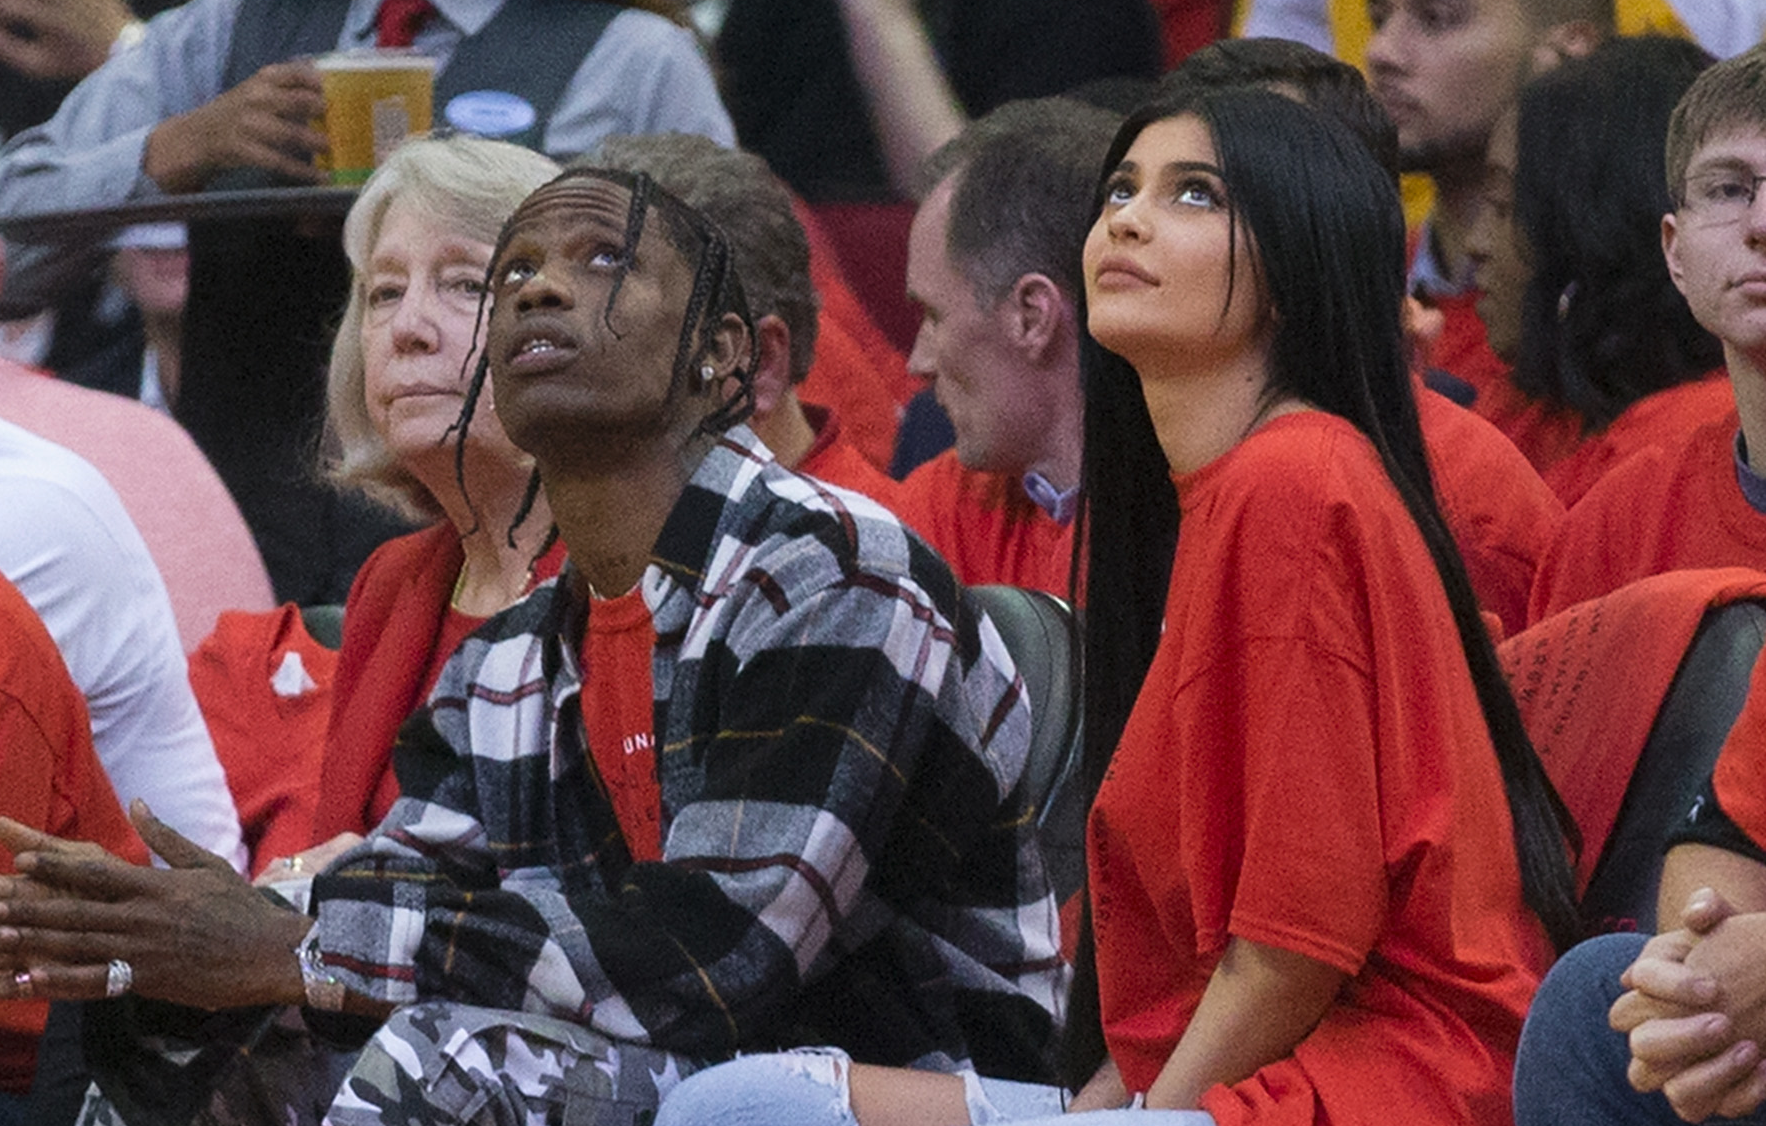 So—Are Kylie Jenner and Travis Scott Dating?